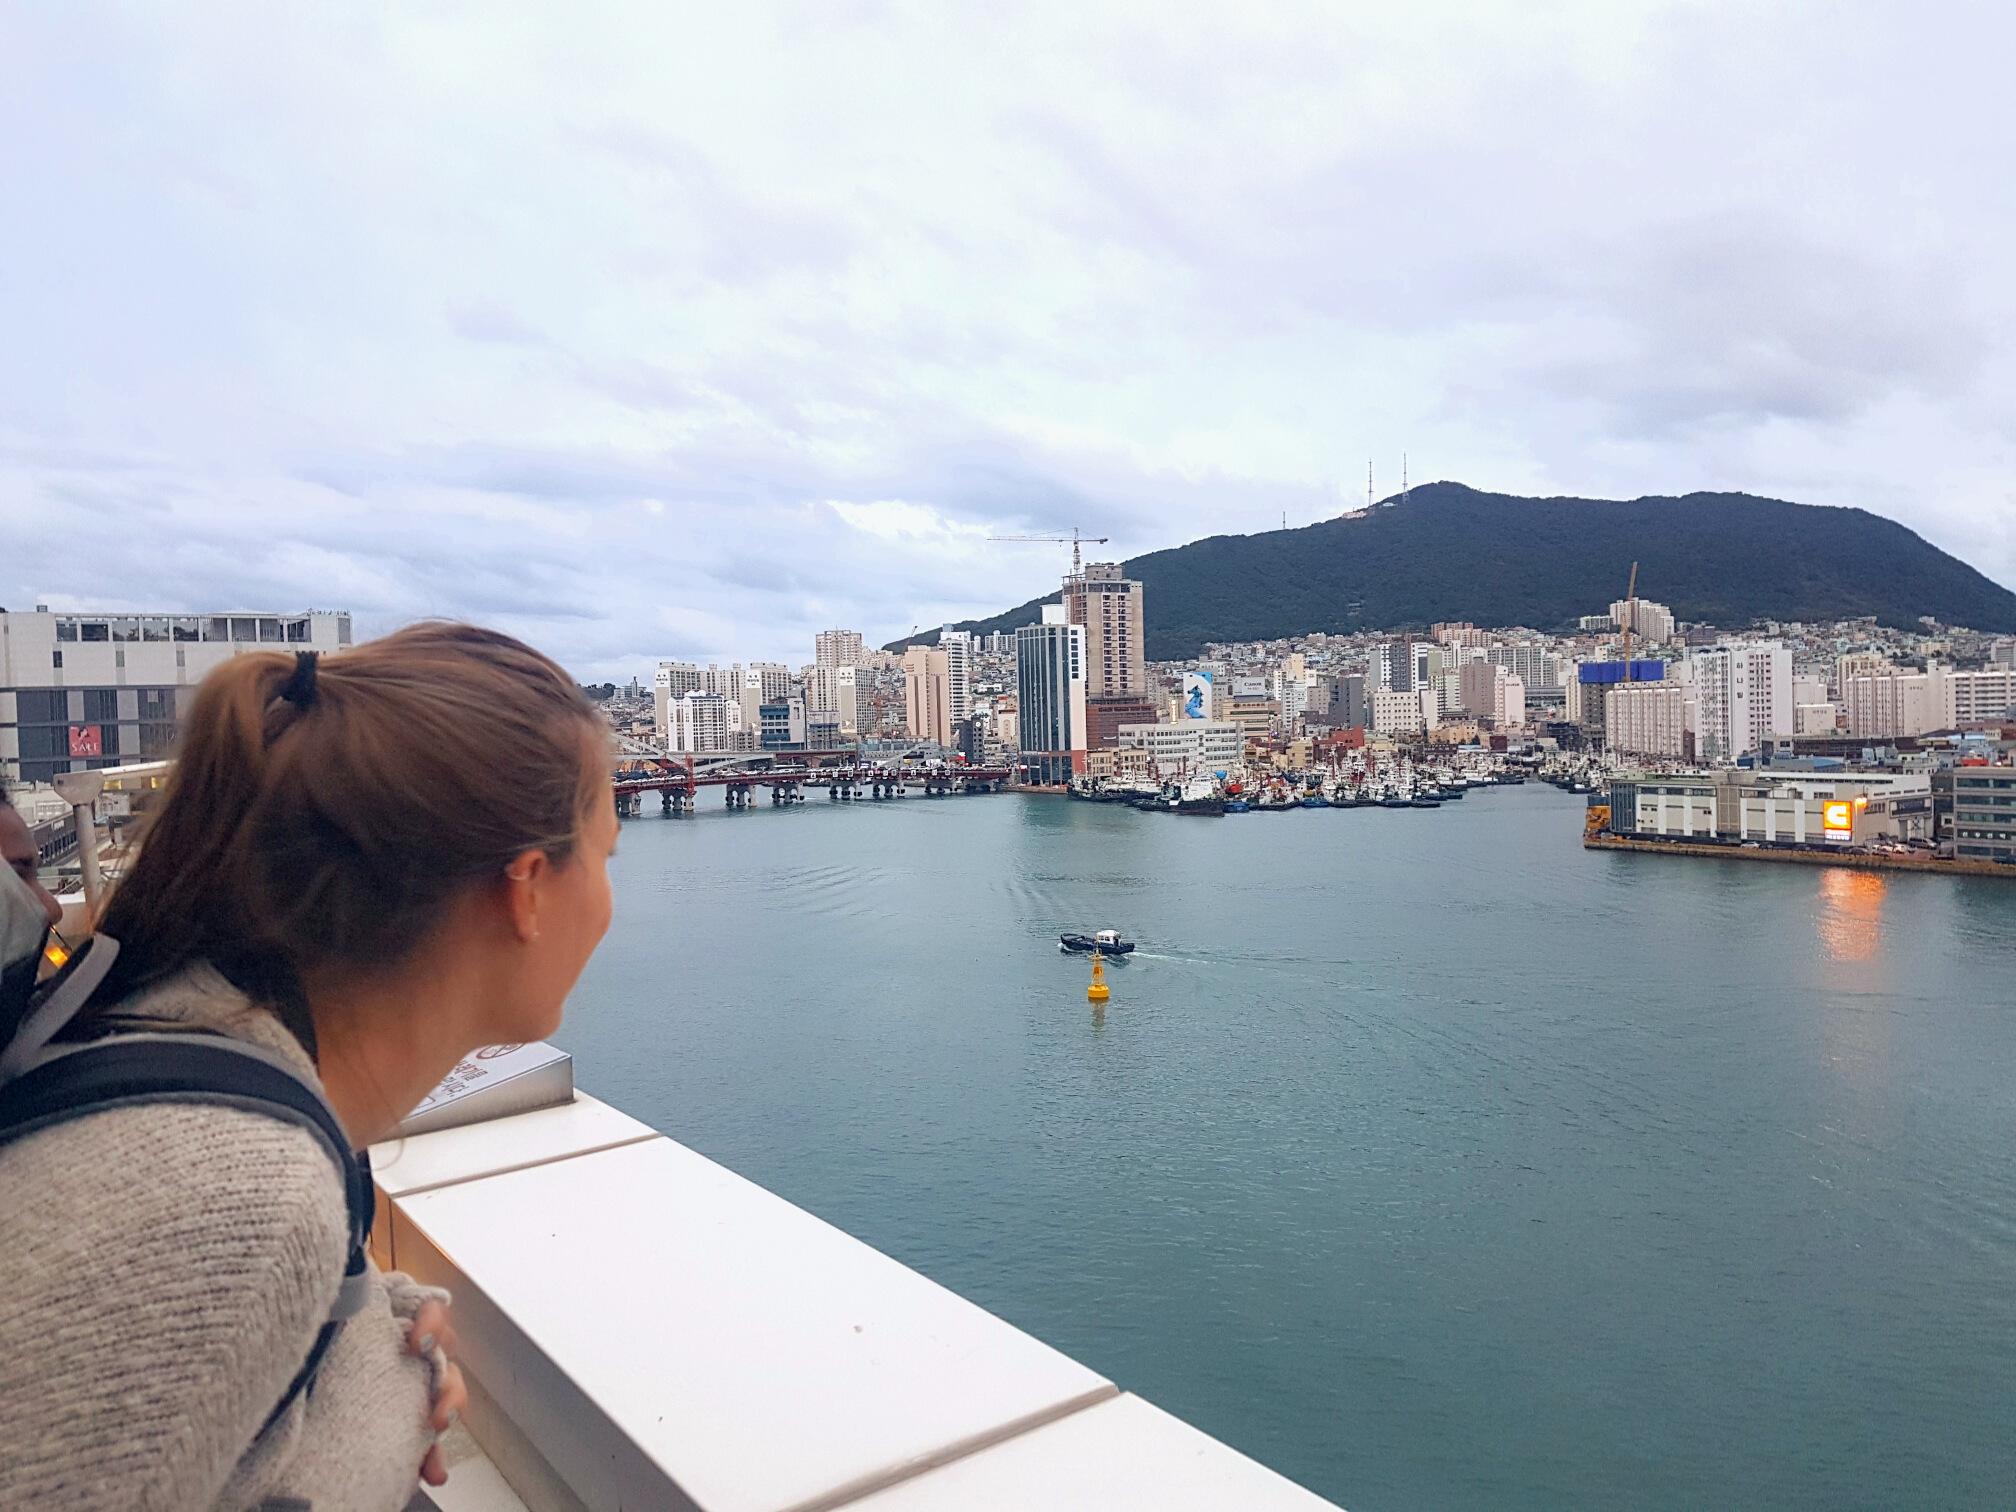 Ina admiring the view from our rooftop.